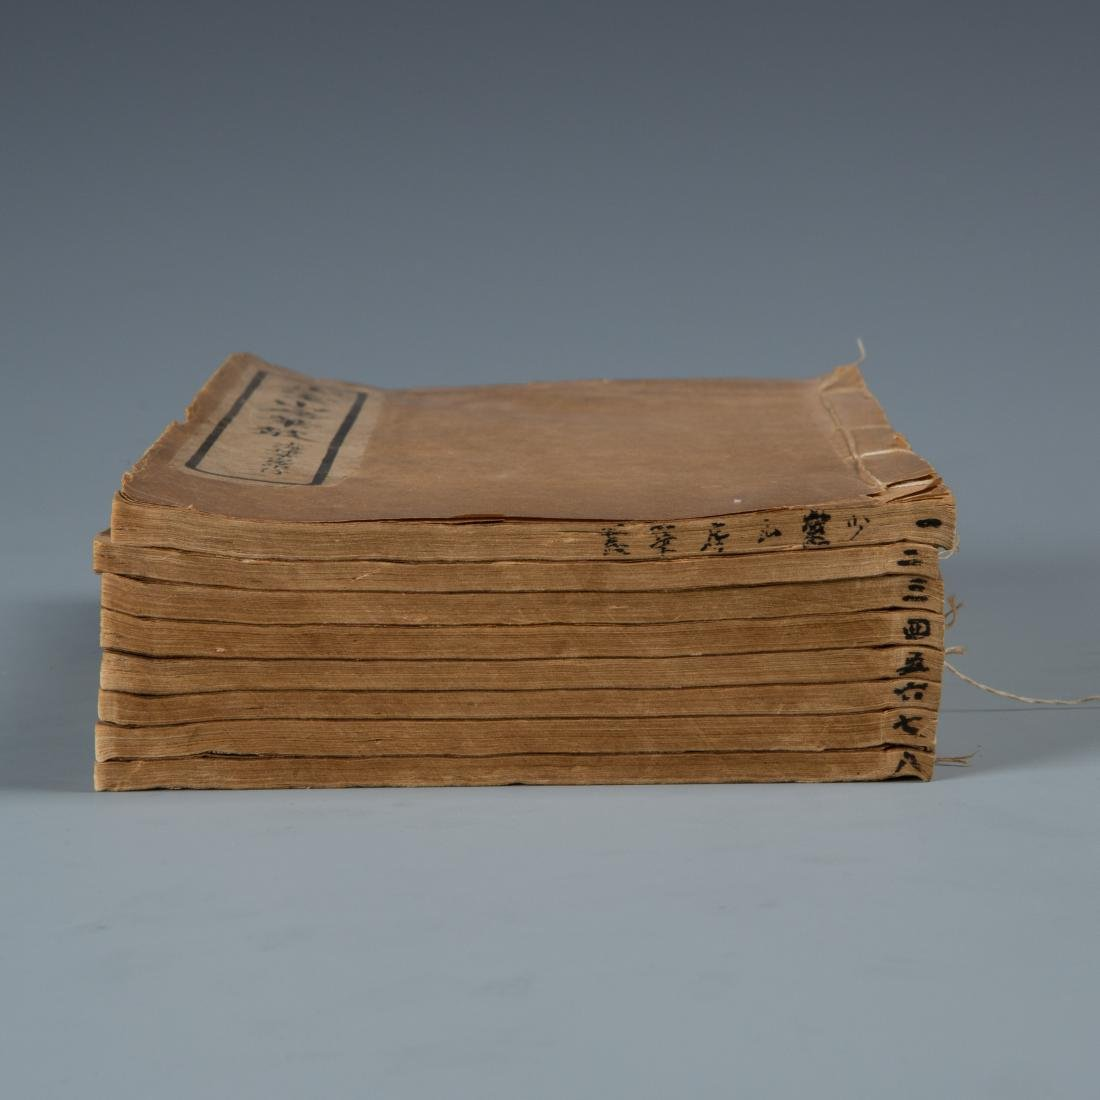 Chinese Old Book